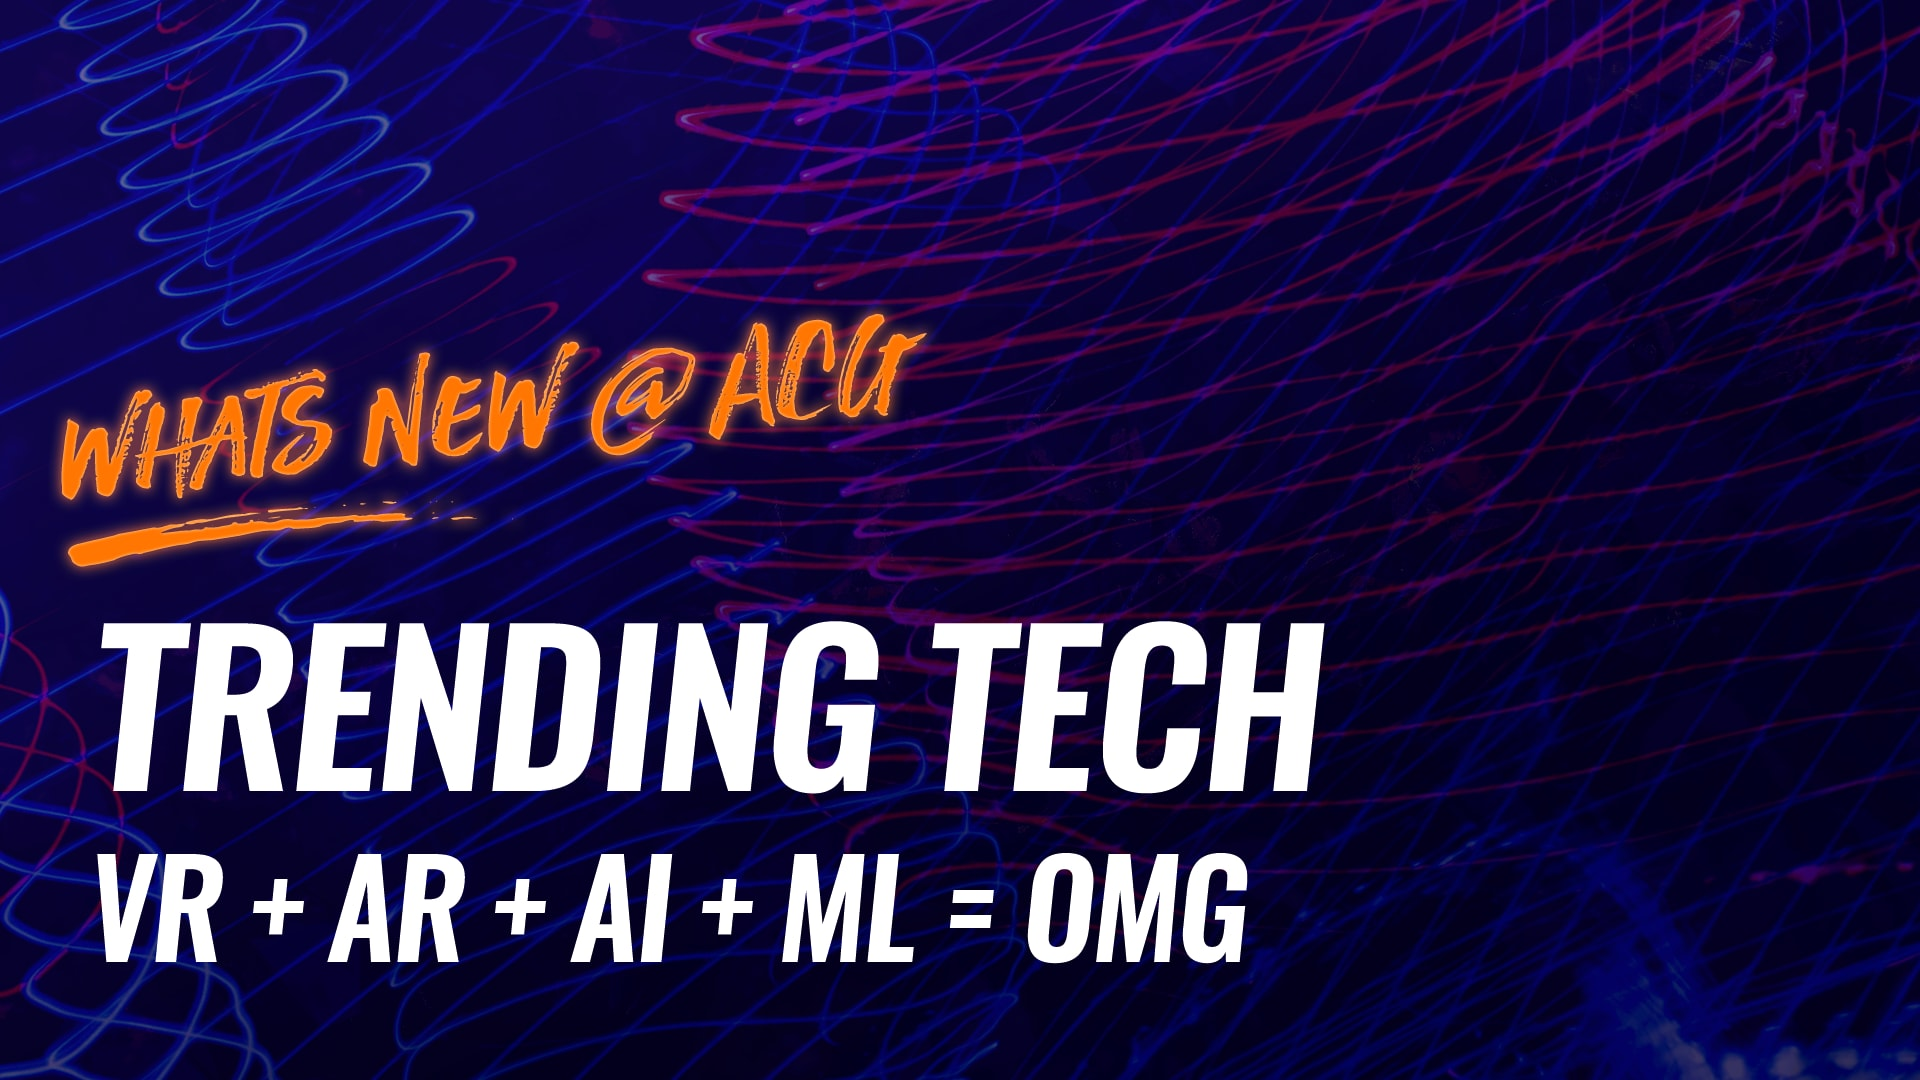 Whats new @acg - Trending Tech VR + AR + AI + ML = OMG